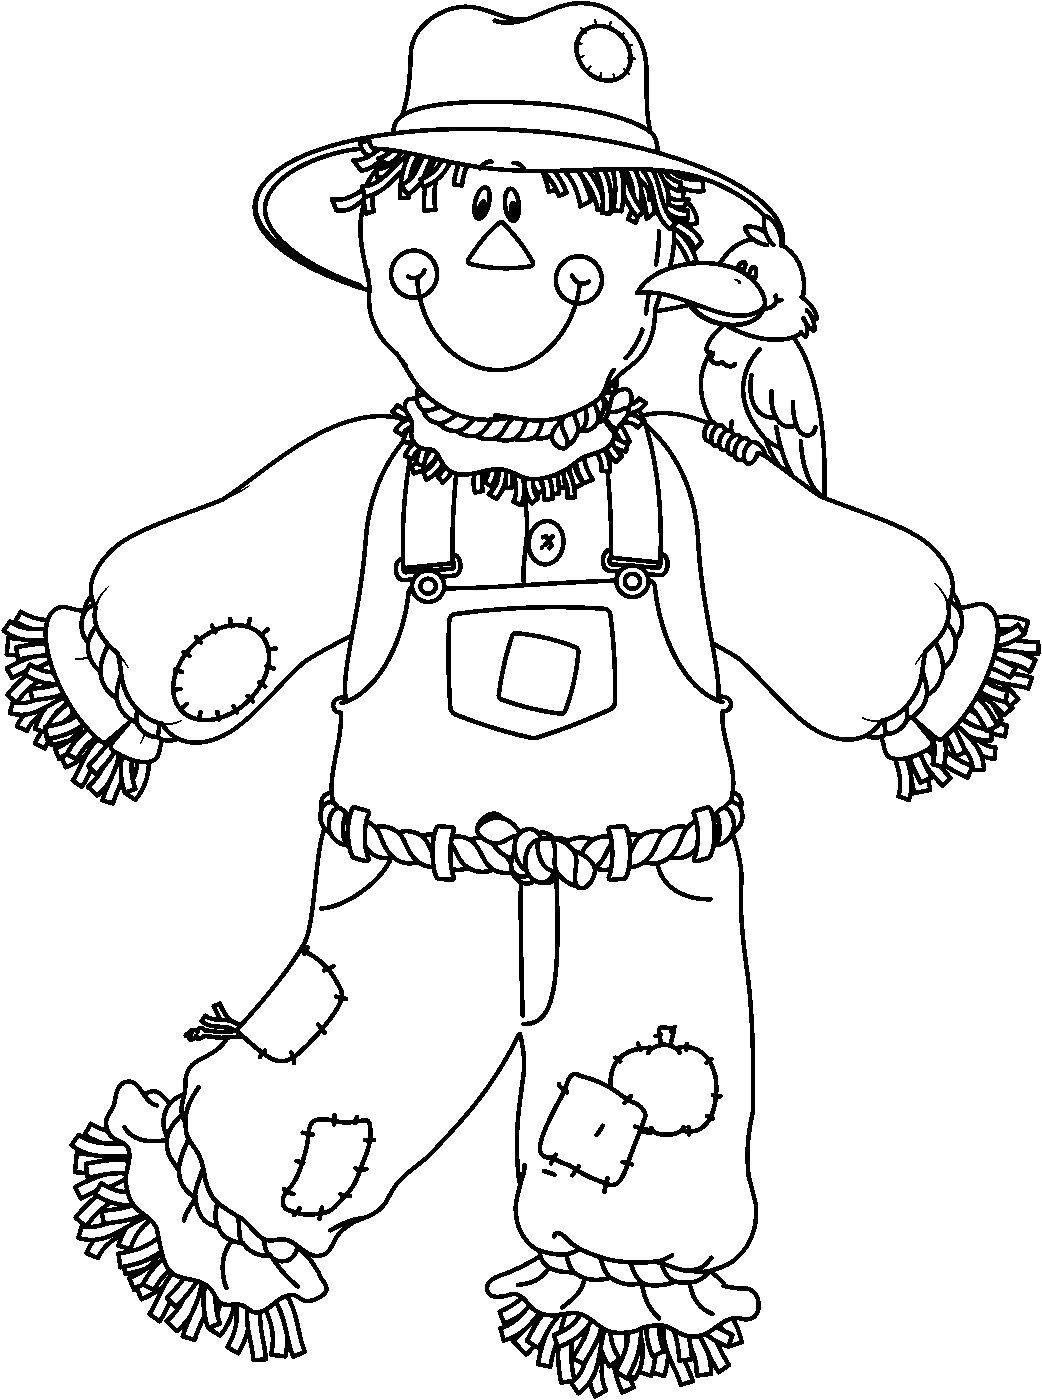 22+ Beautiful Image of Scarecrow Coloring Page - davemelillo.com #halloweencoloringpages